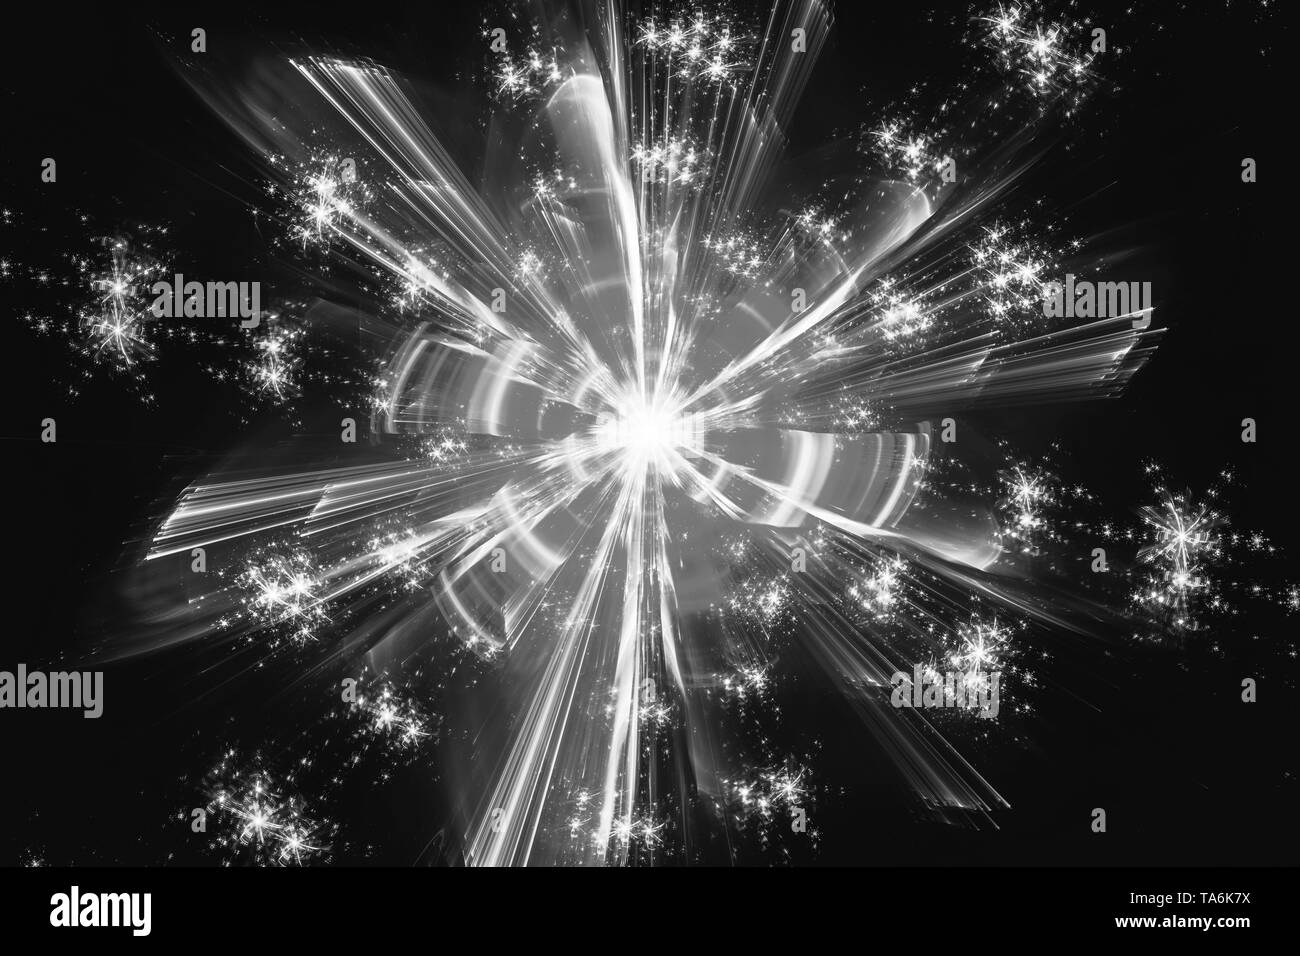 Glowing quantum fractal, computer generated abstract intensity map, black and white, screen effect. 3D rendering - Stock Image